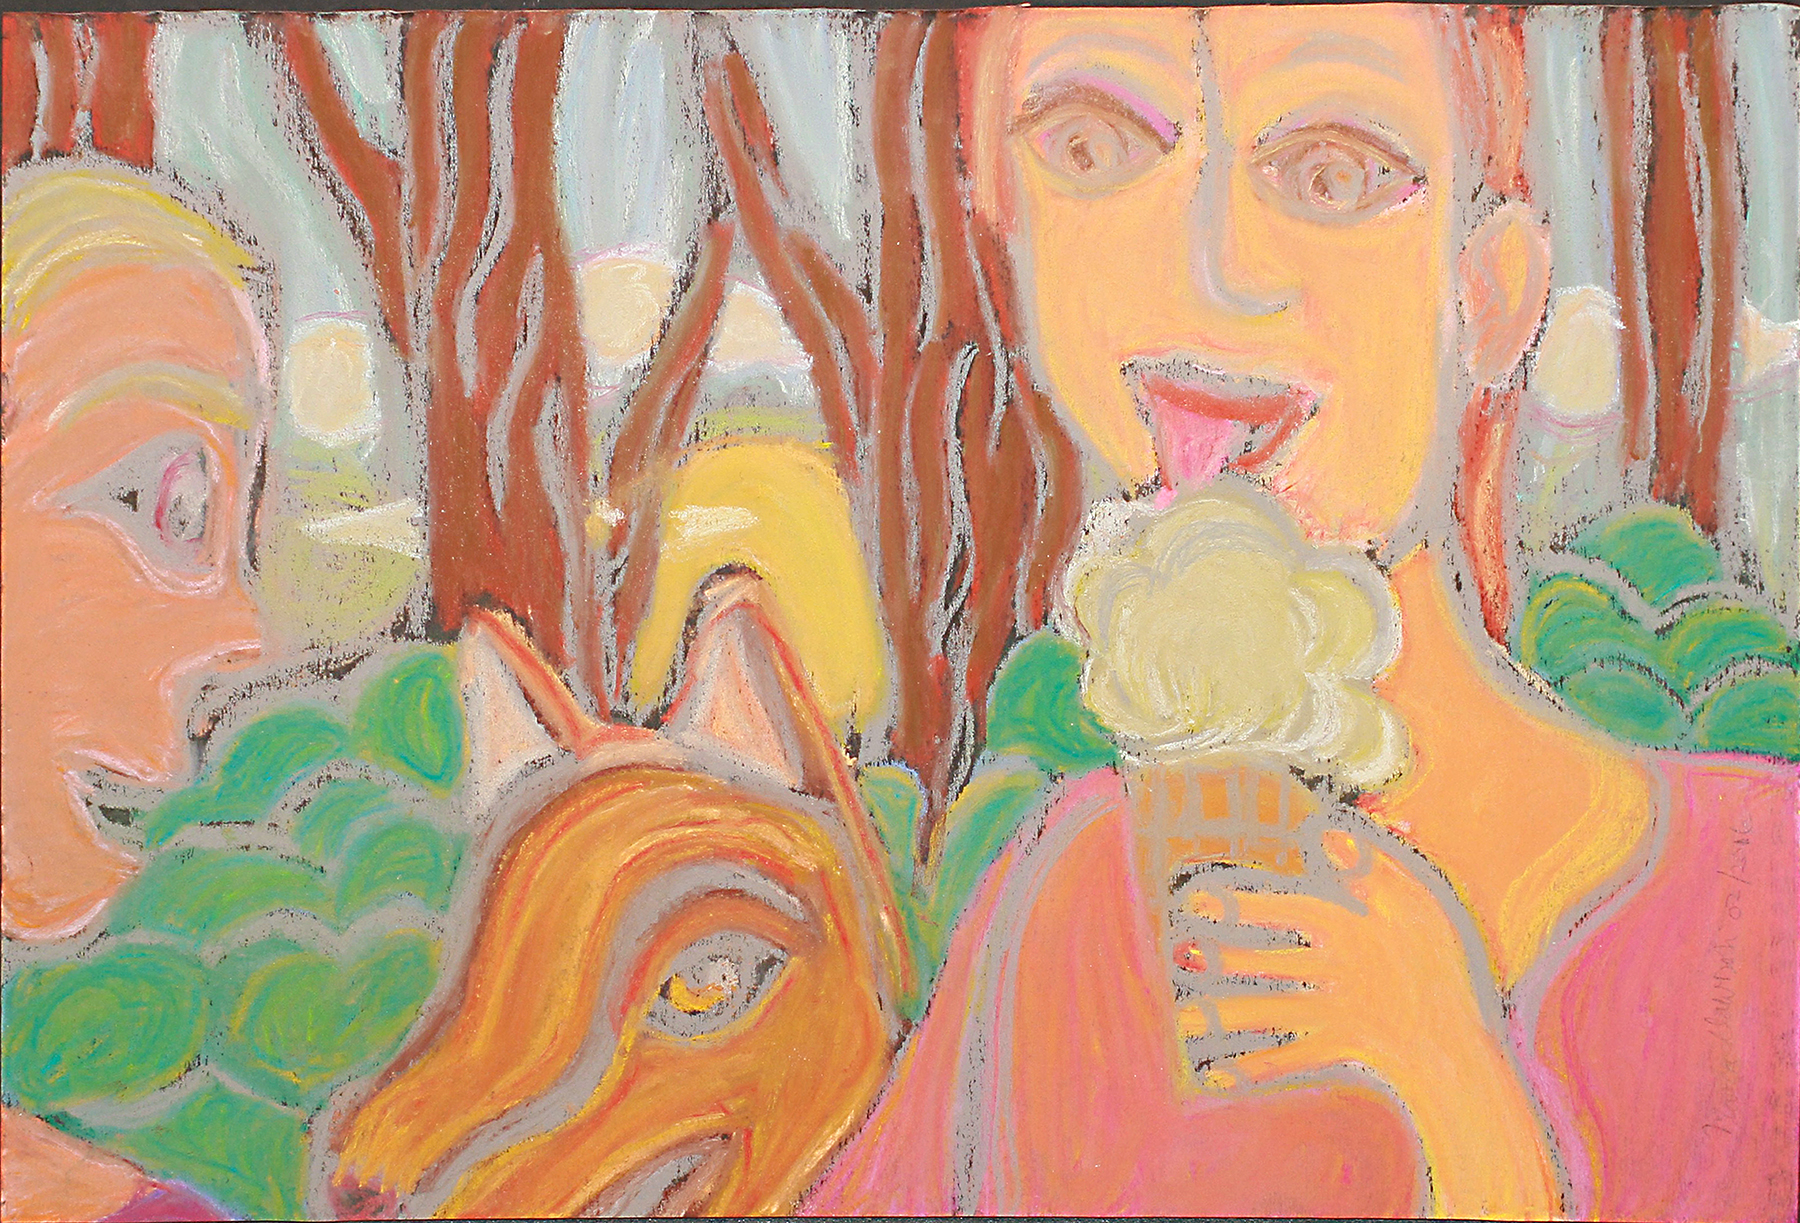 Mara clawson enjoying some ice cream allouche postcard file copyright 2016 2